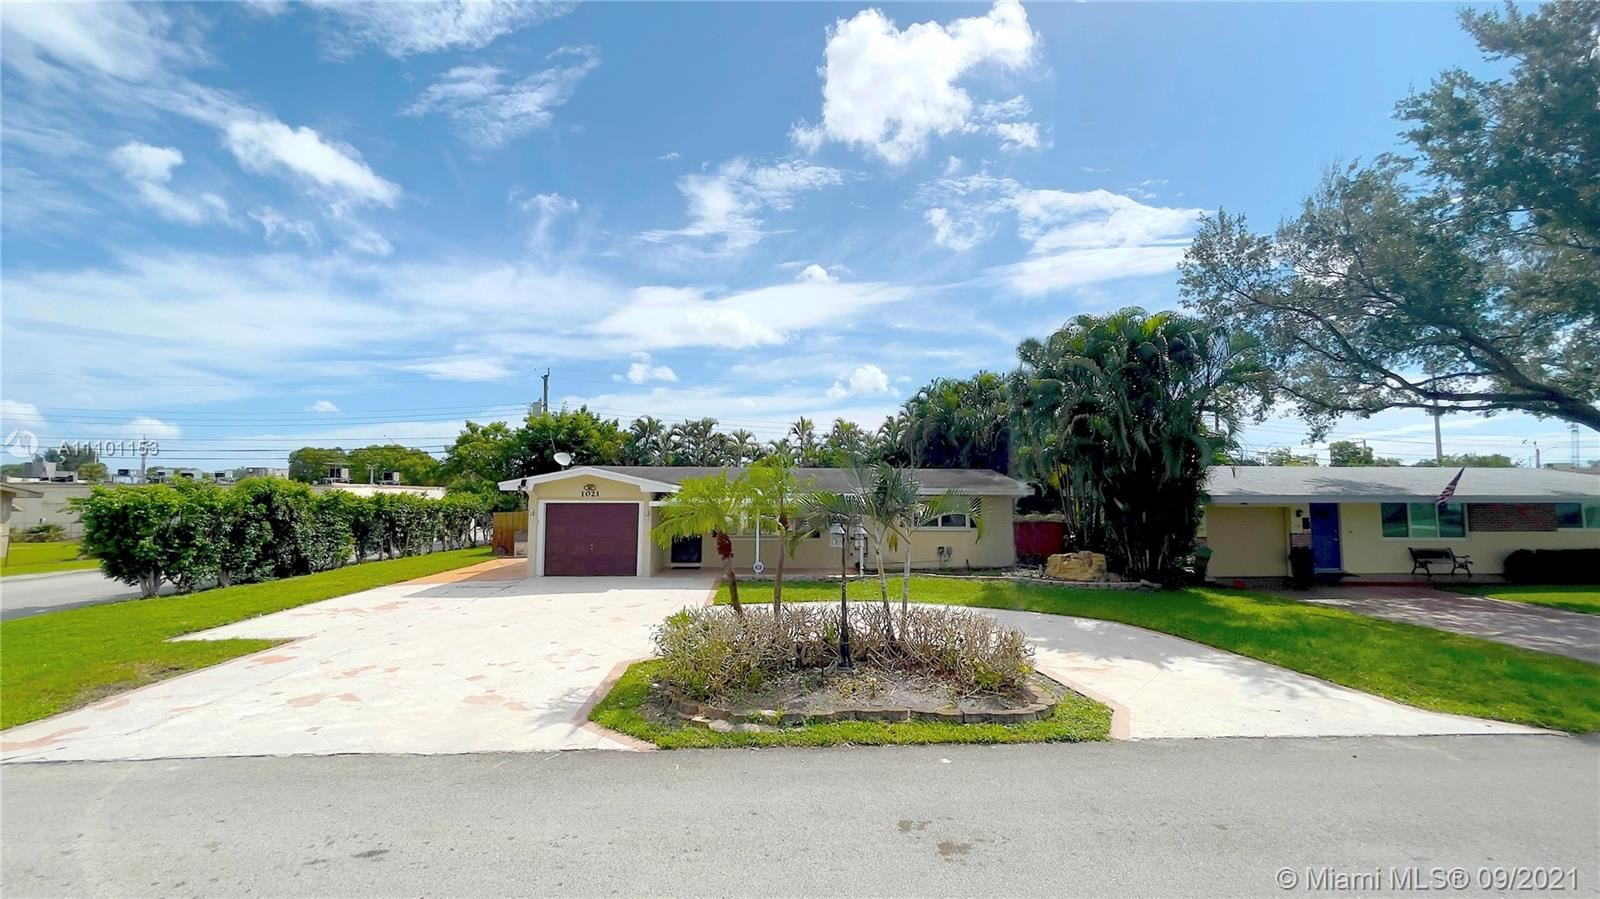 Photo of 1021 NW 81st Ave, Pembroke Pines, FL 33024 (MLS # A11101153)